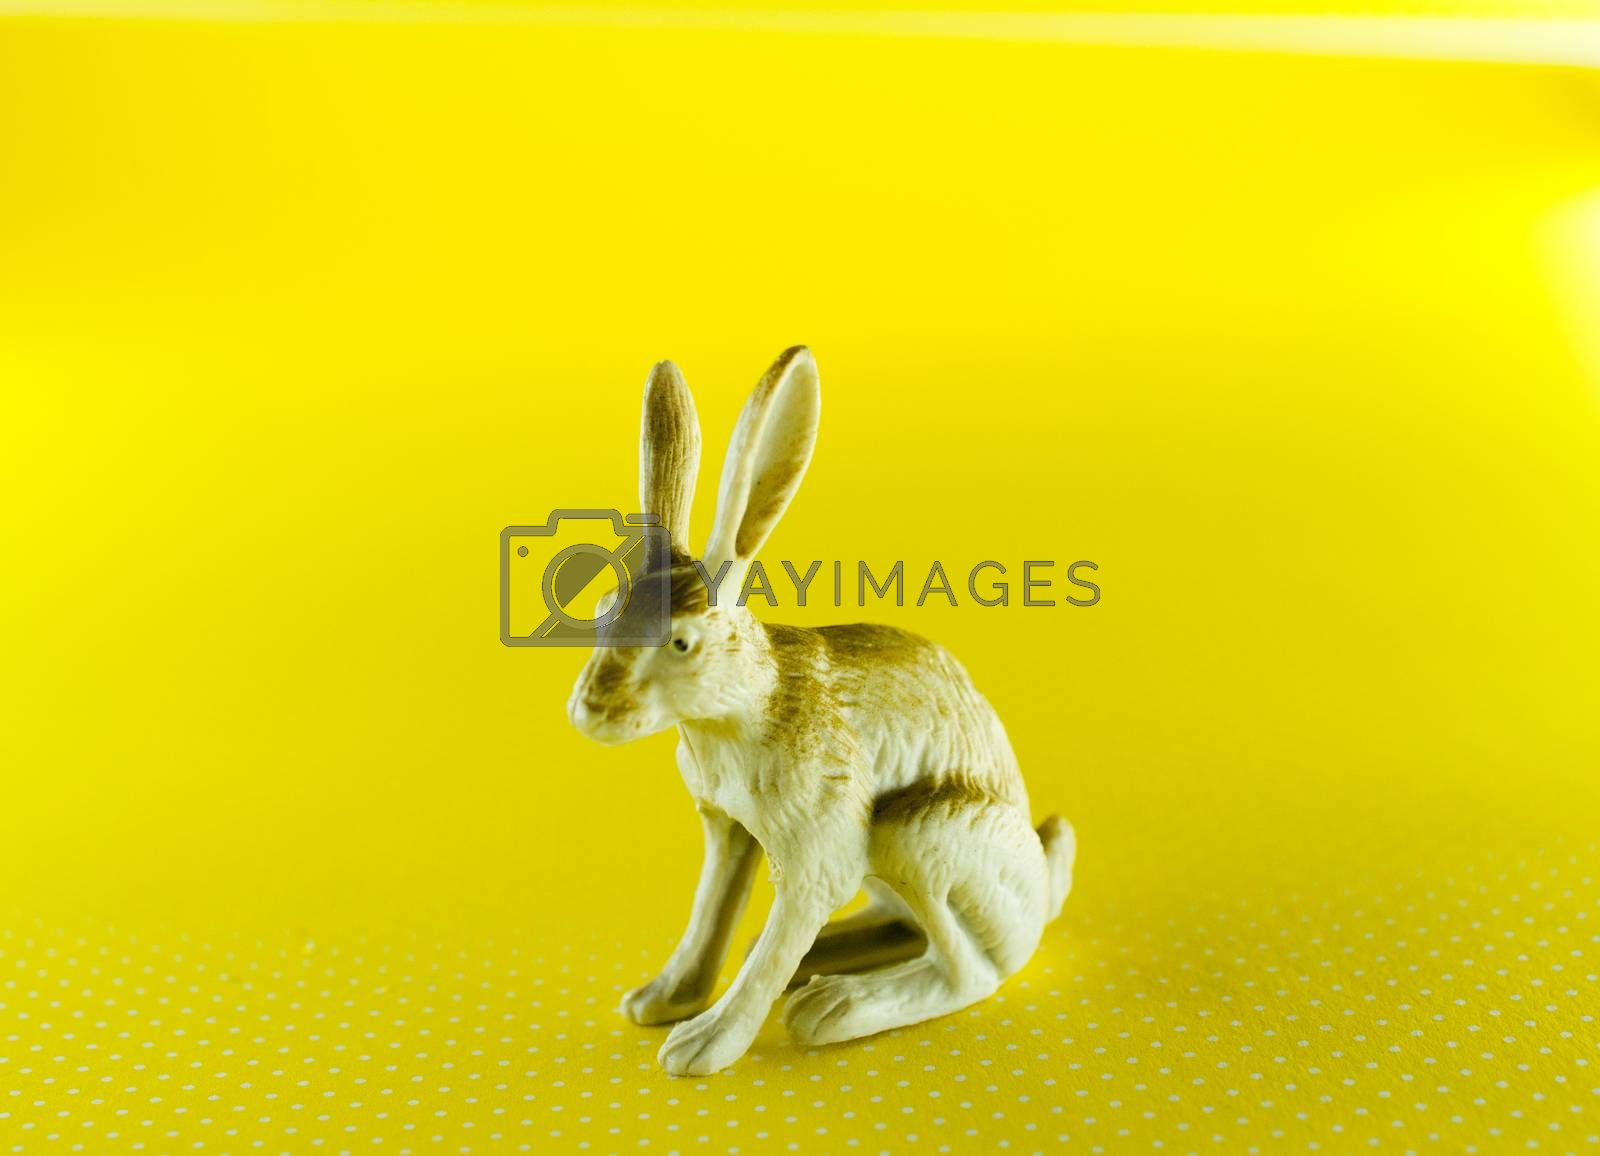 plastic figurine of a rabbit on yellow background image